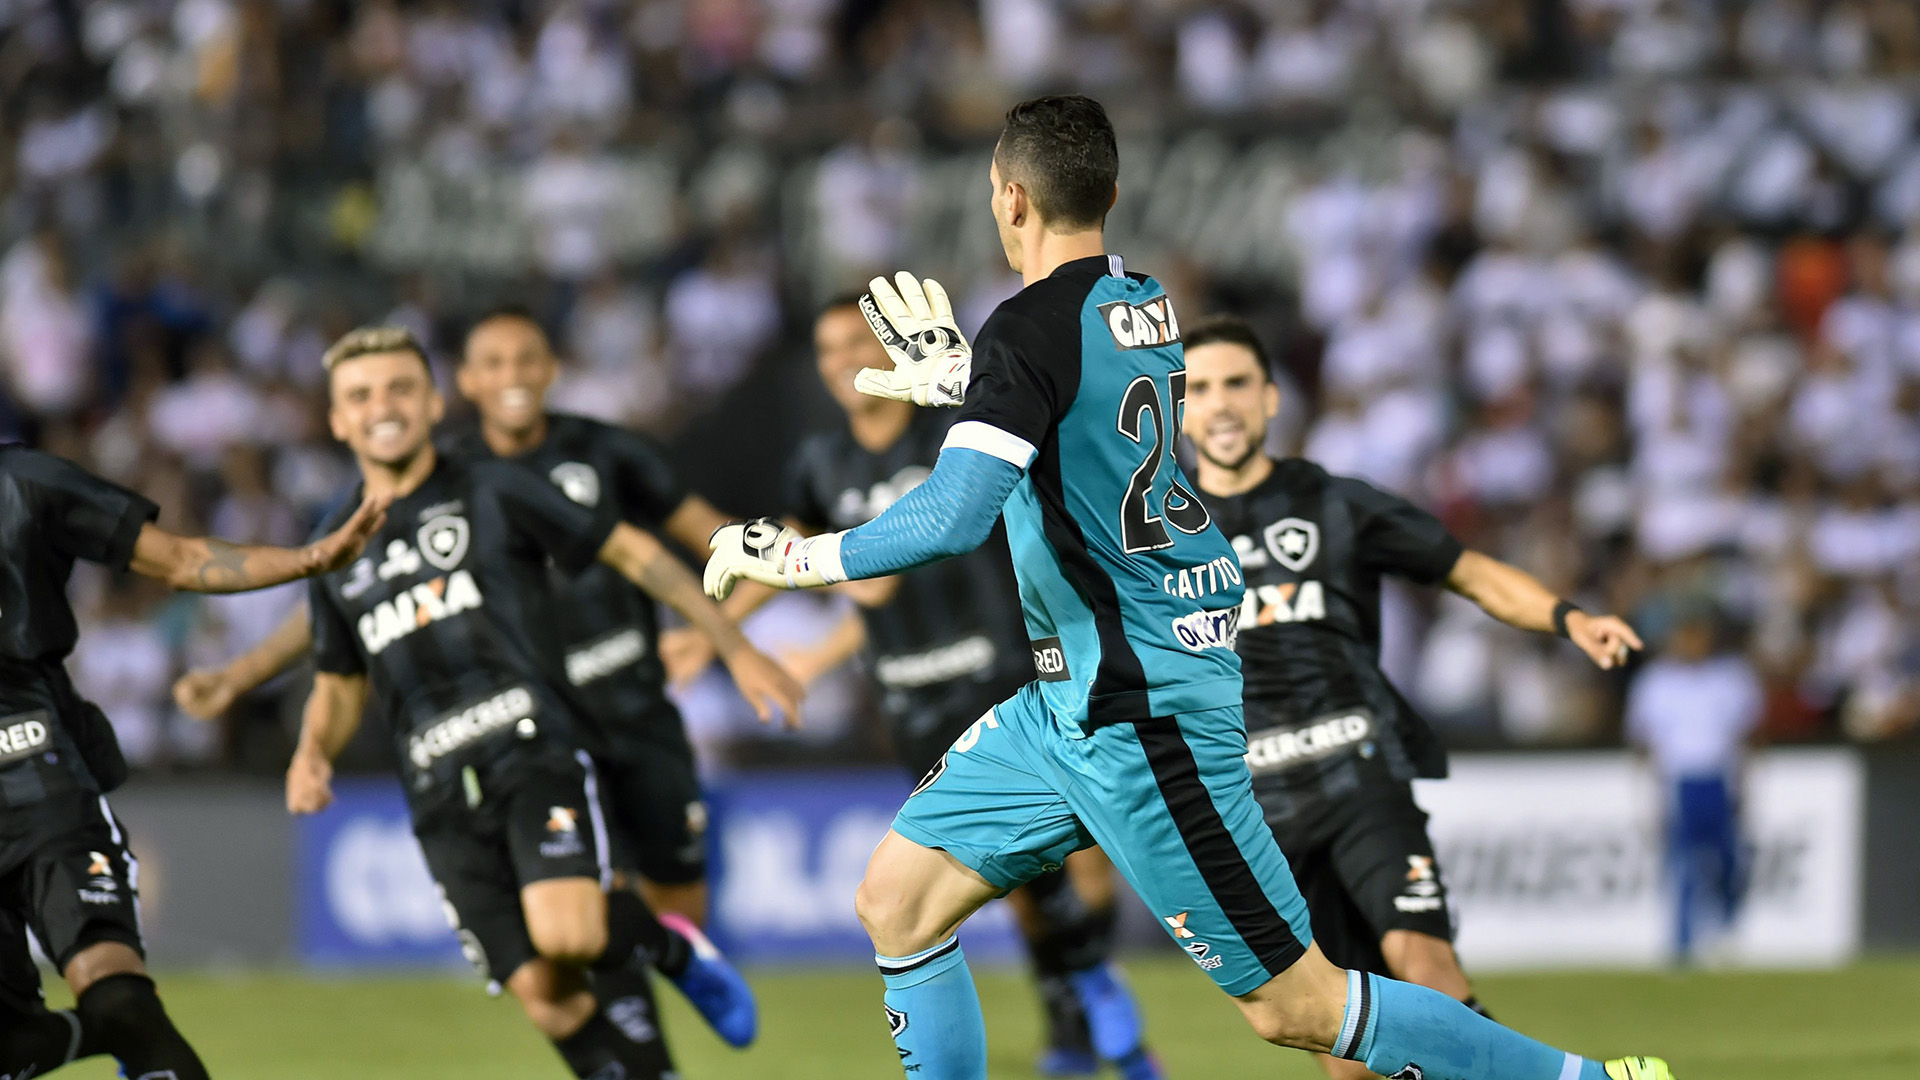 Brazil's Botafogo player Gatito Fernandez (C) celebrates with teammates after blocking three penalty shots by Paraguay's Olimpia during their Copa Libertadores 2017 football match at the Defensores del Chaco stadium in Asuncion, Paraguay, on February 22, 2017. / AFP / NORBERTO DUARTE        (Photo credit should read NORBERTO DUARTE/AFP/Getty Images)